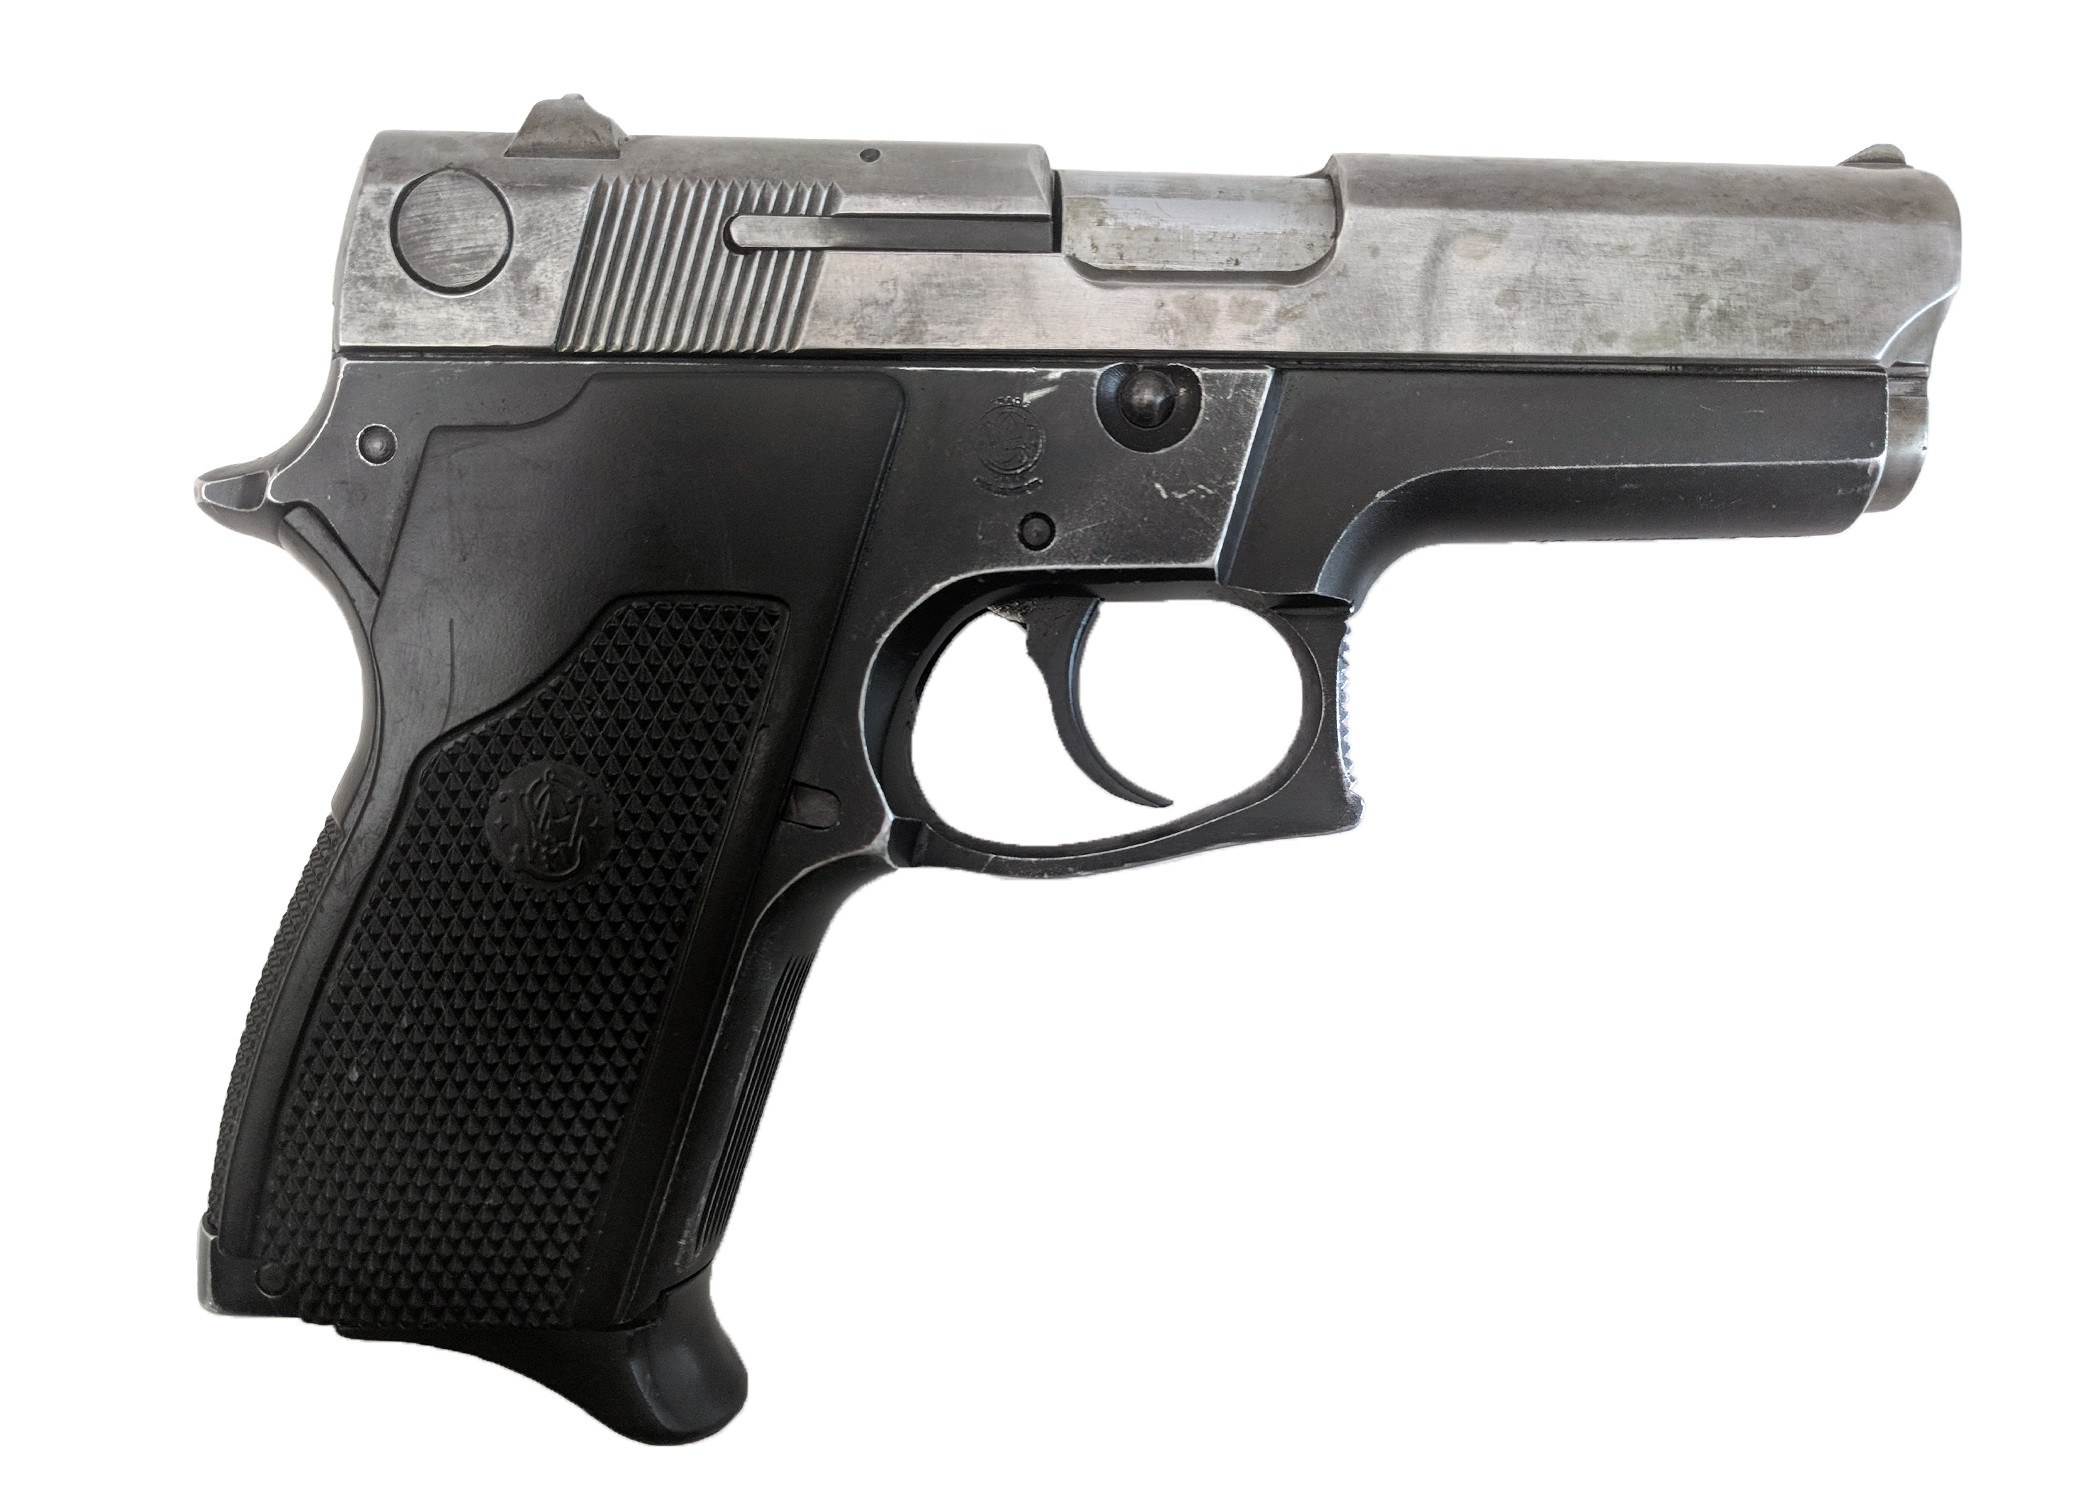 Smith & Wesson 469, 9mm, *Fair, Cracked Grip*